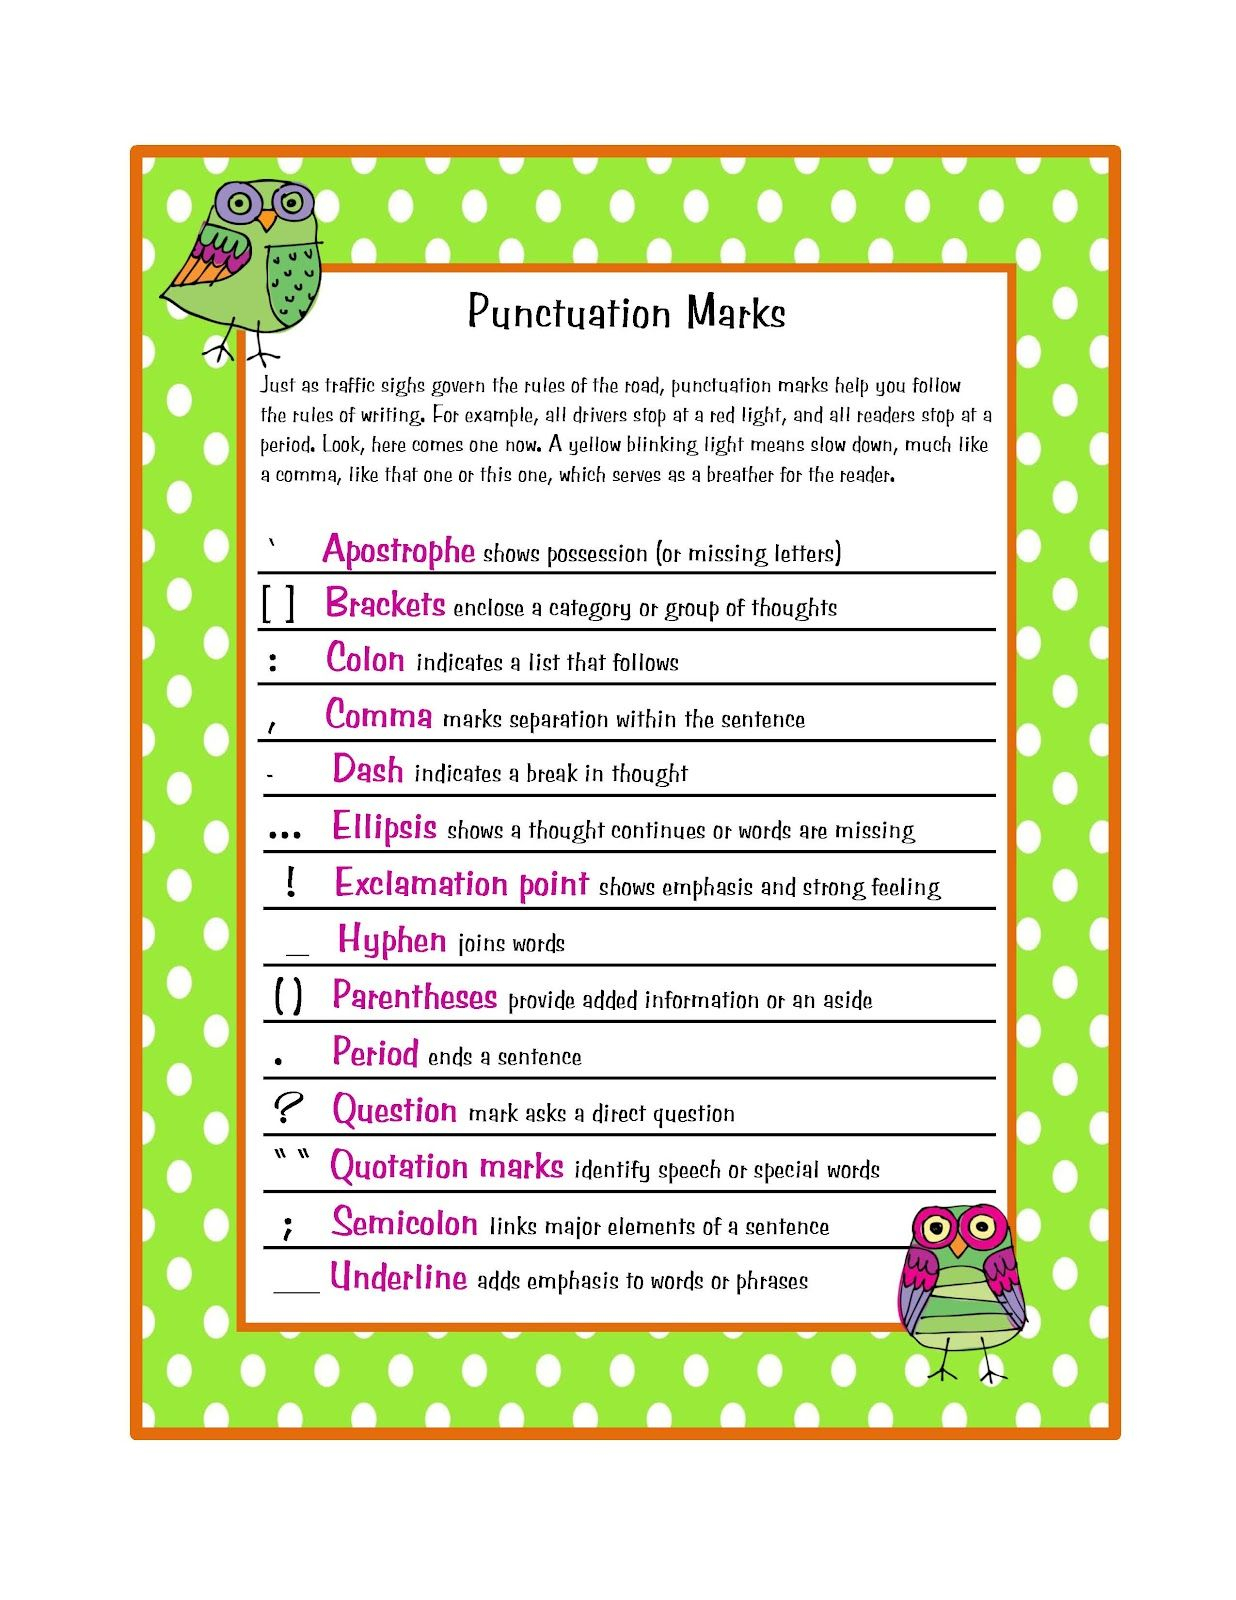 Free Punctuation Marks Poster | Preschool Printablesgwyn - Punctuation Posters Printable Free